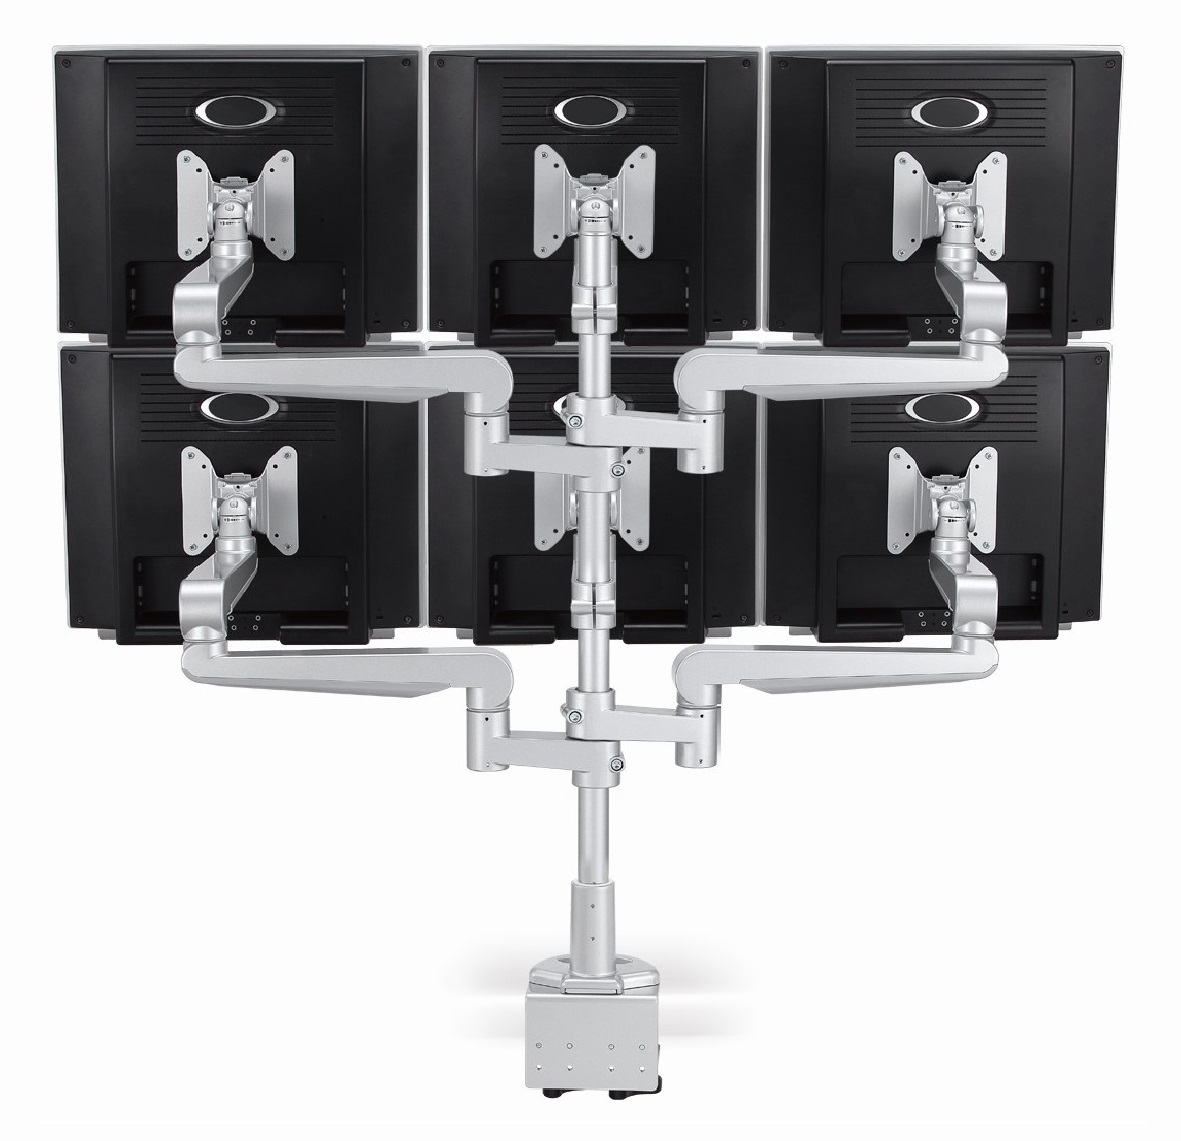 Ergo Ltd Six Screen With Desk Clamp